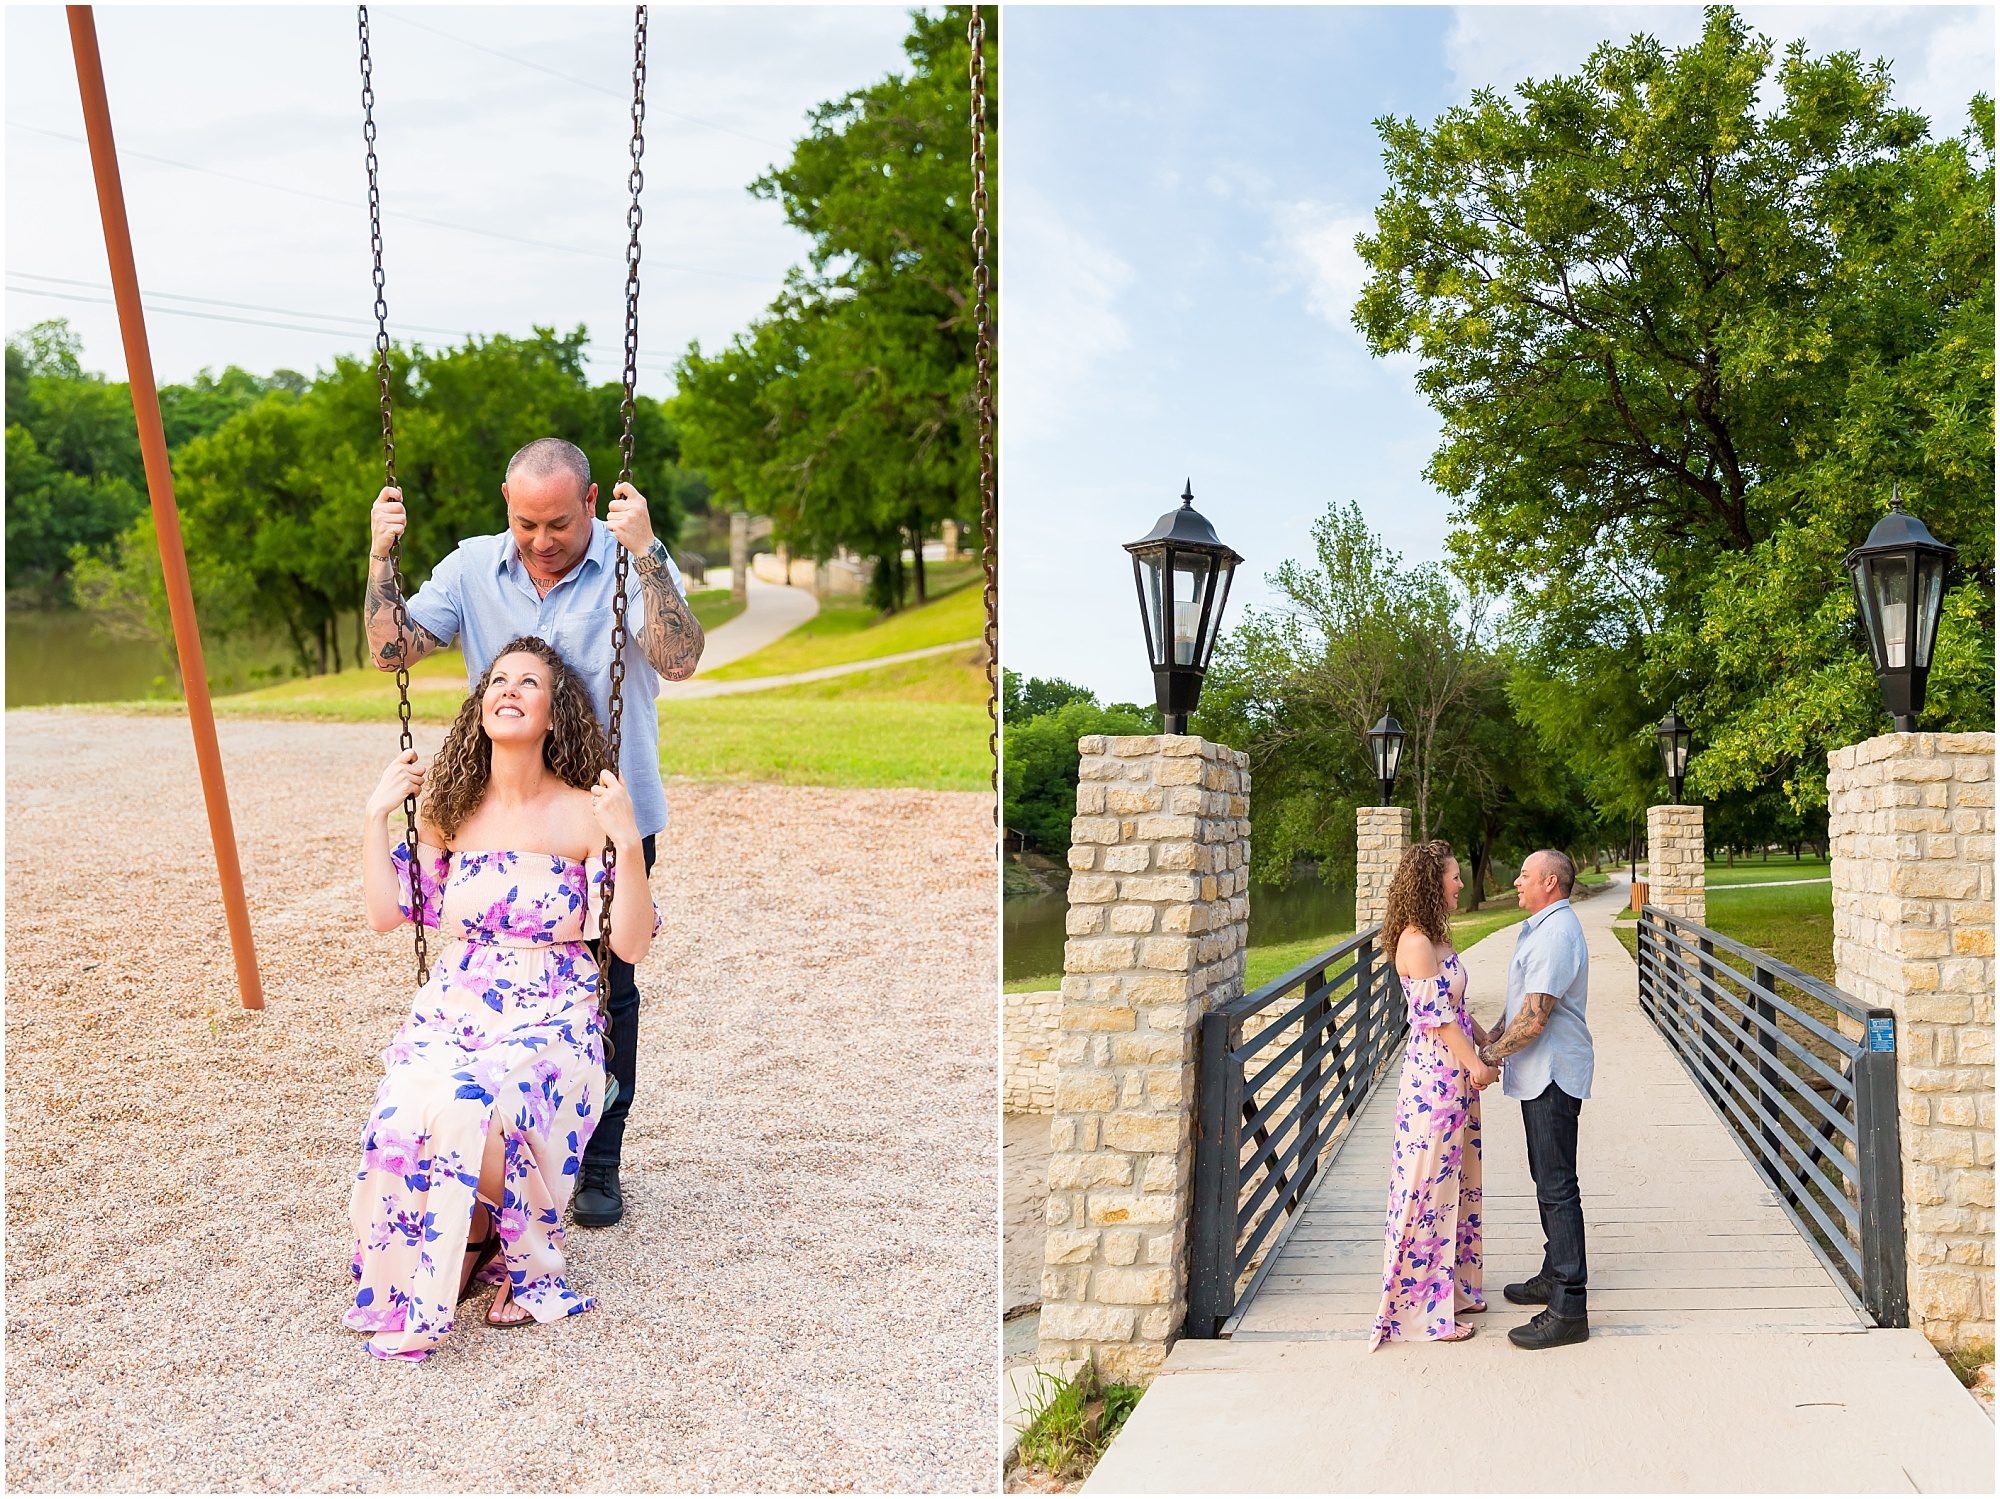 Photo by Jason & Melaina Photography, Waco Texas